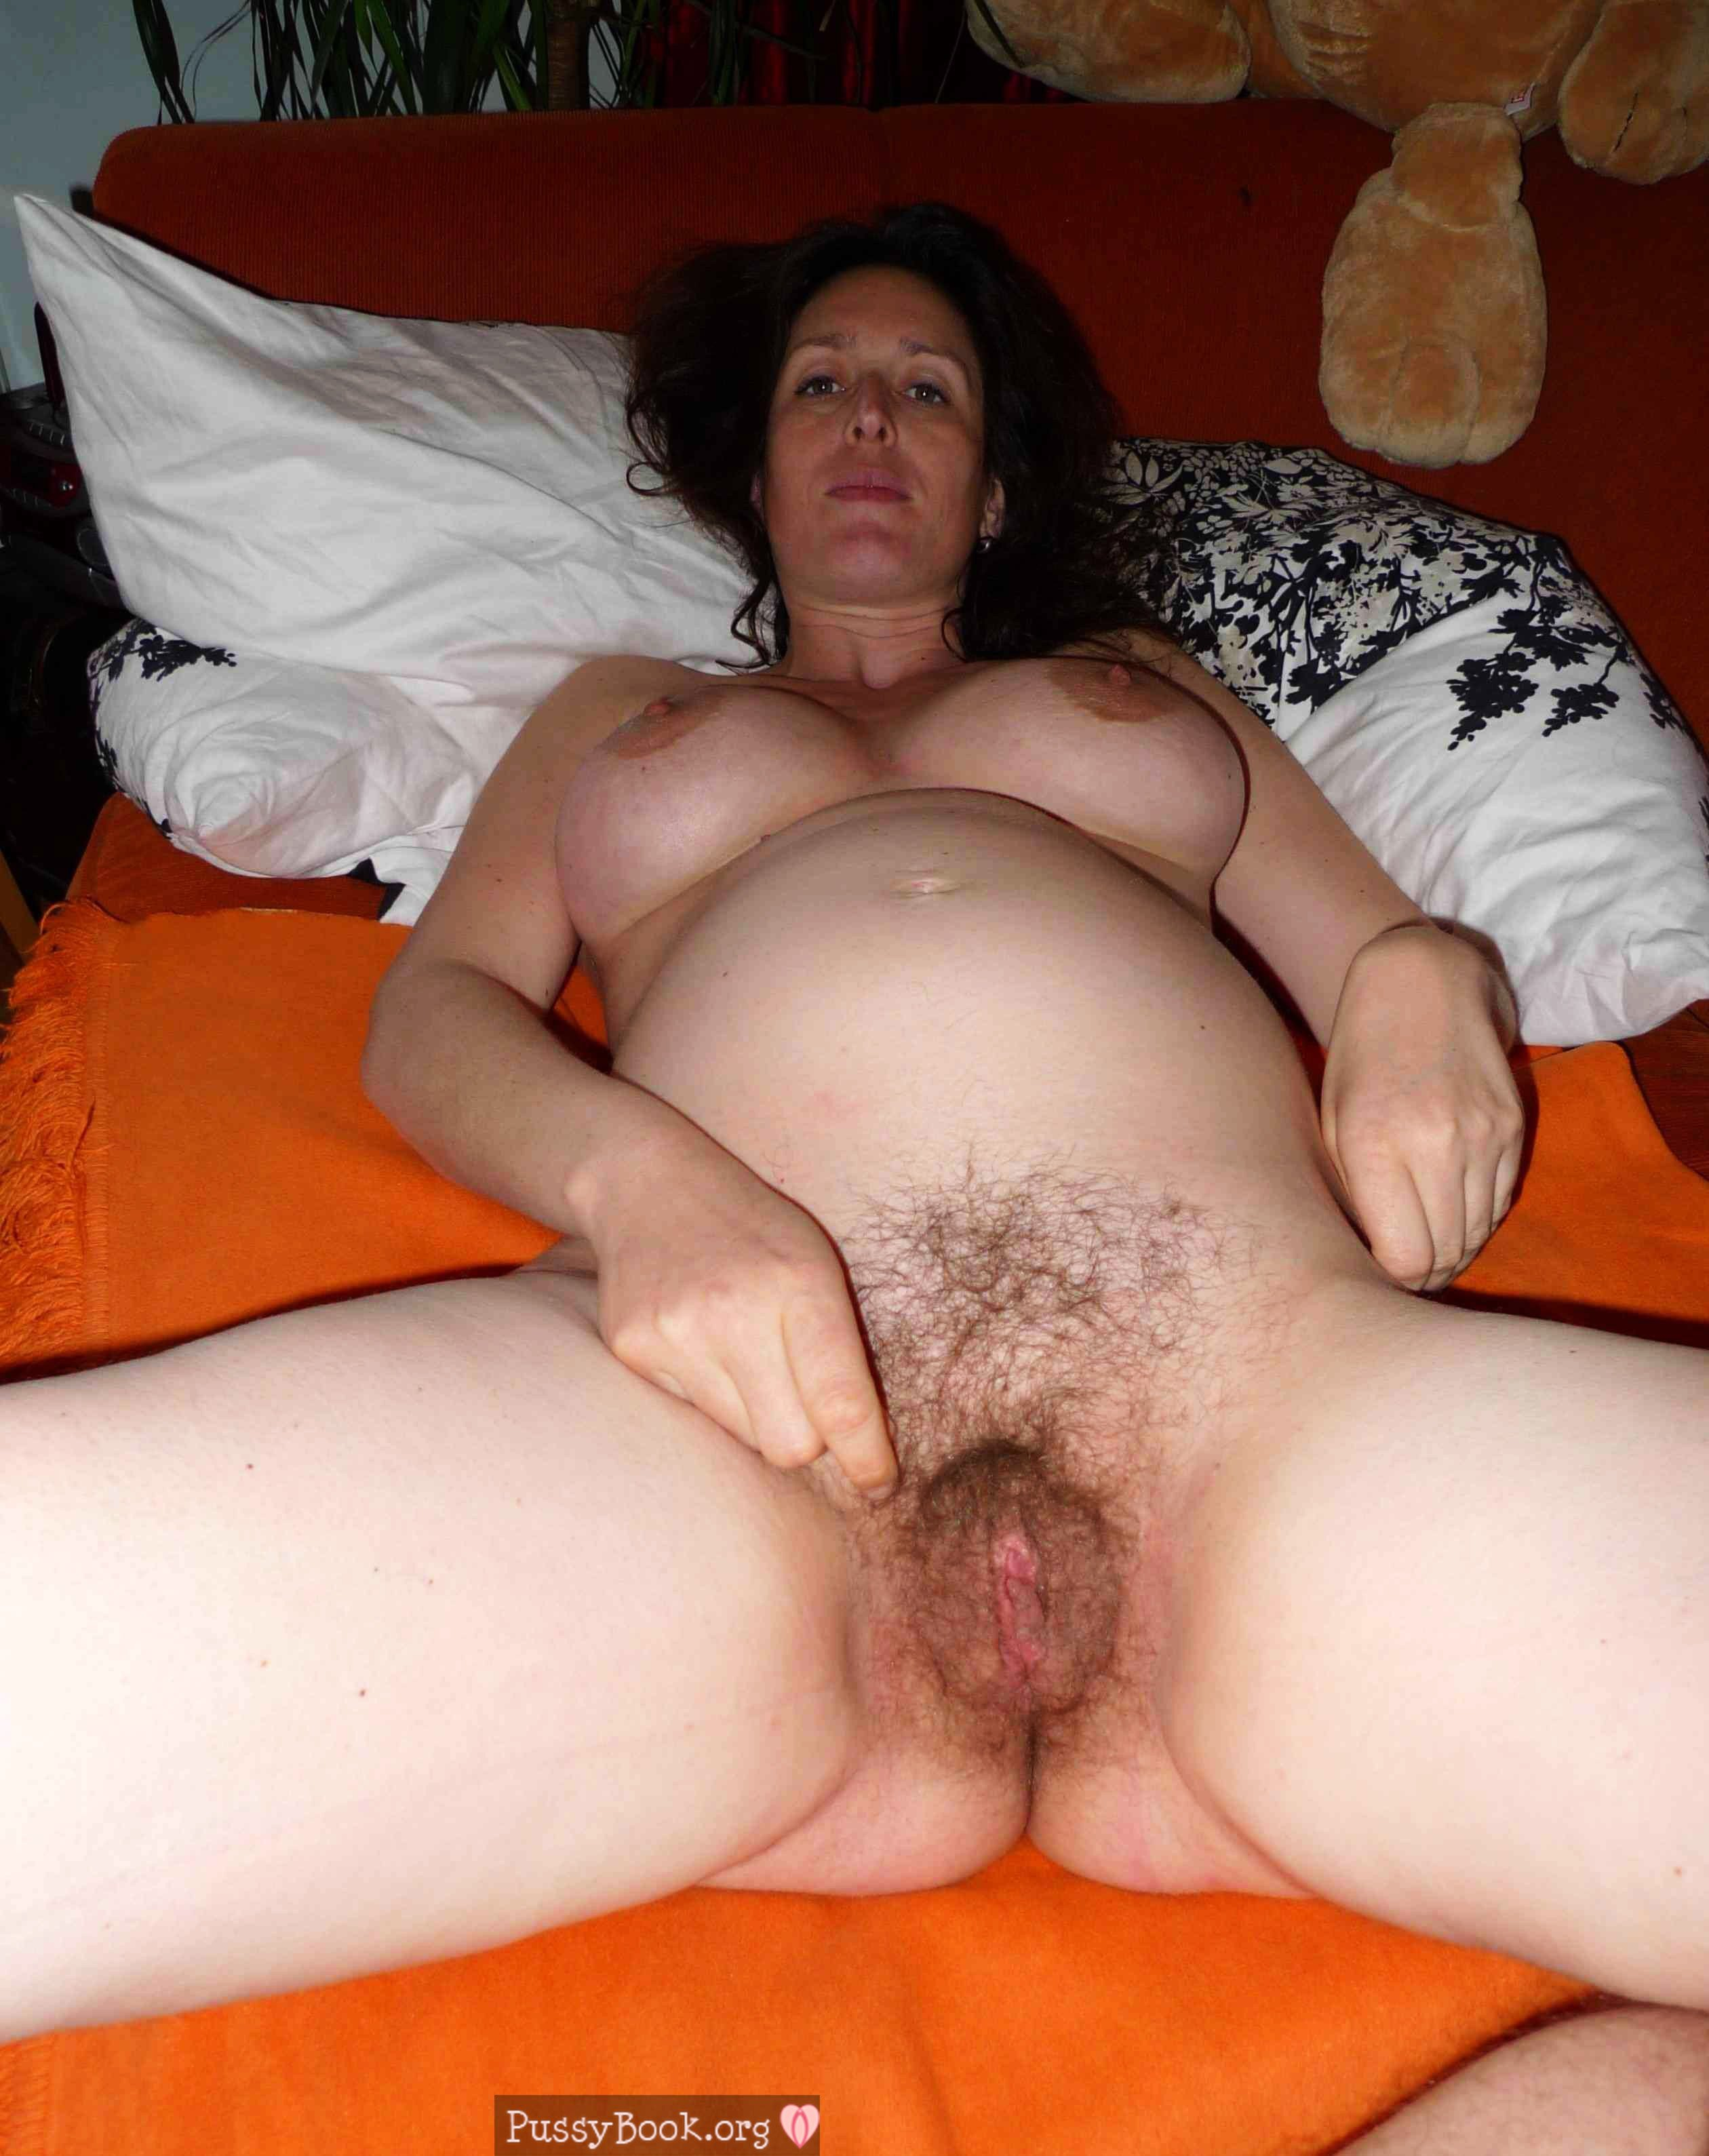 Remarkable, rather Nude pregnant pussy brilliant